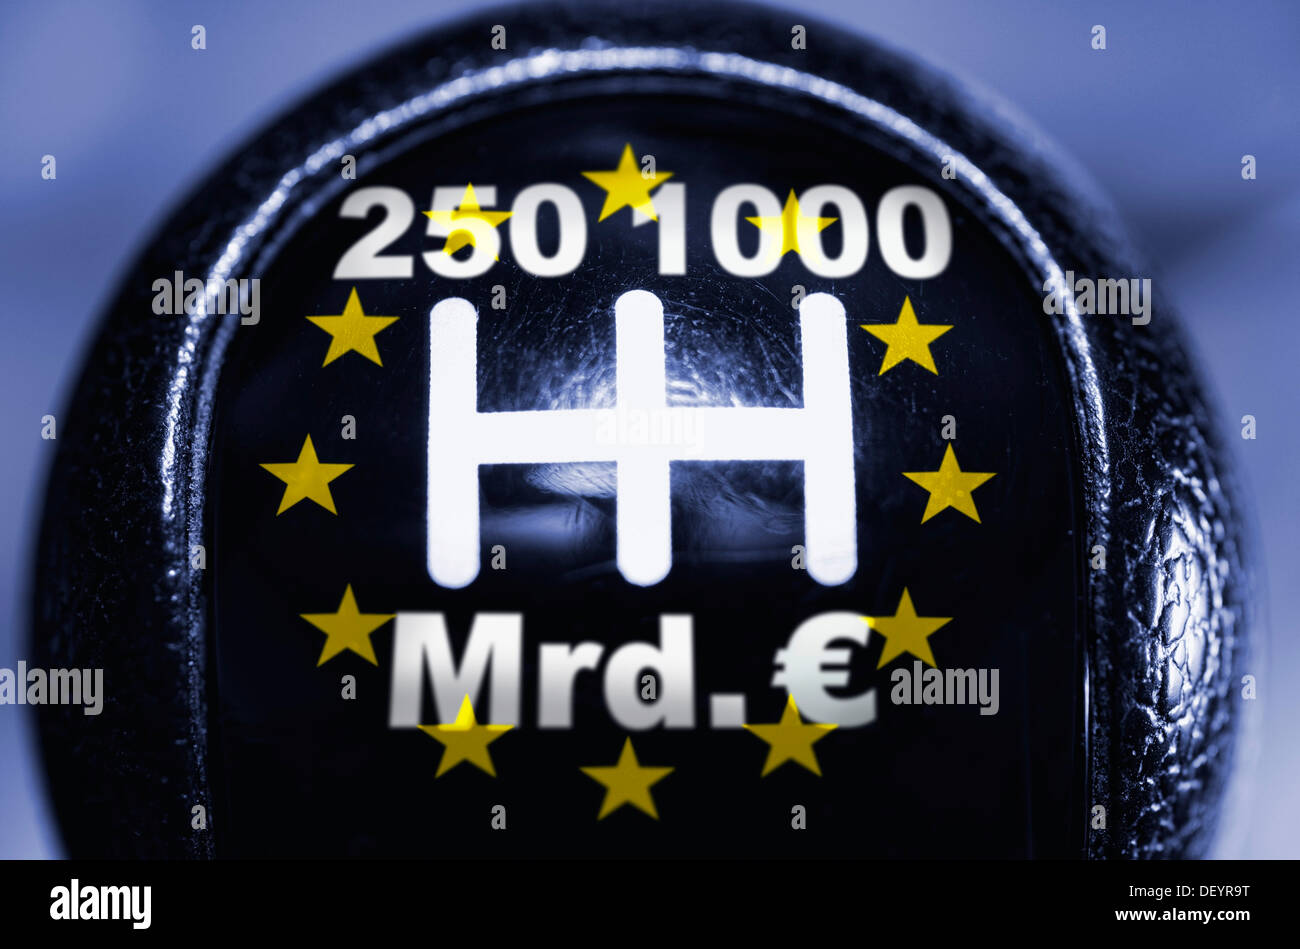 Gear lever with 250 and 1000 billion Euro options, symbolic image, rescue lever, rescue of the Euro - Stock Image